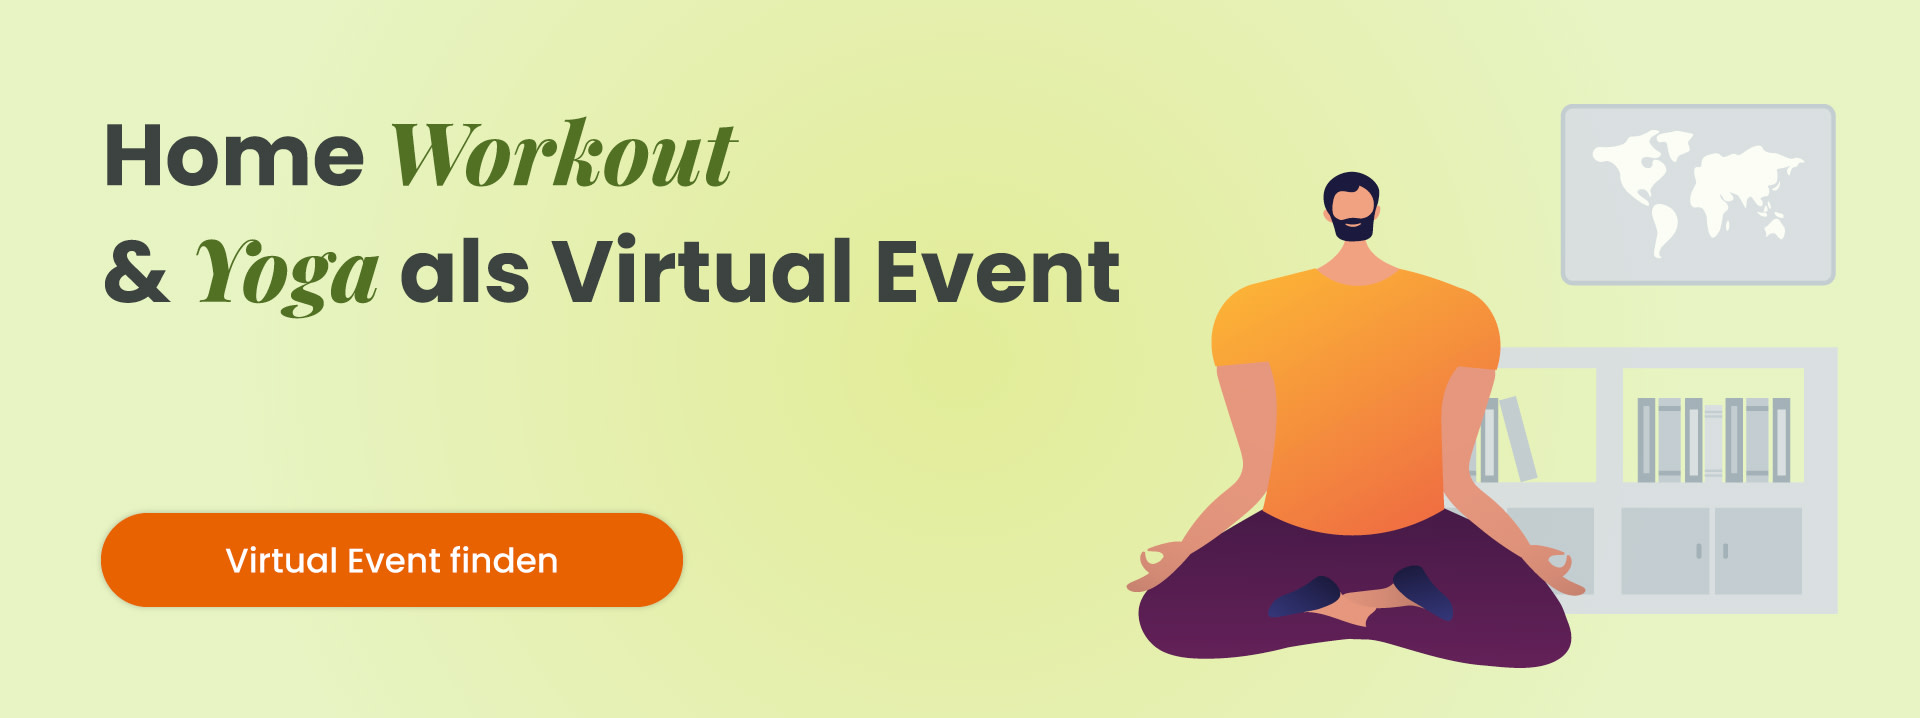 Home Workout & Yoga als Virtual Event